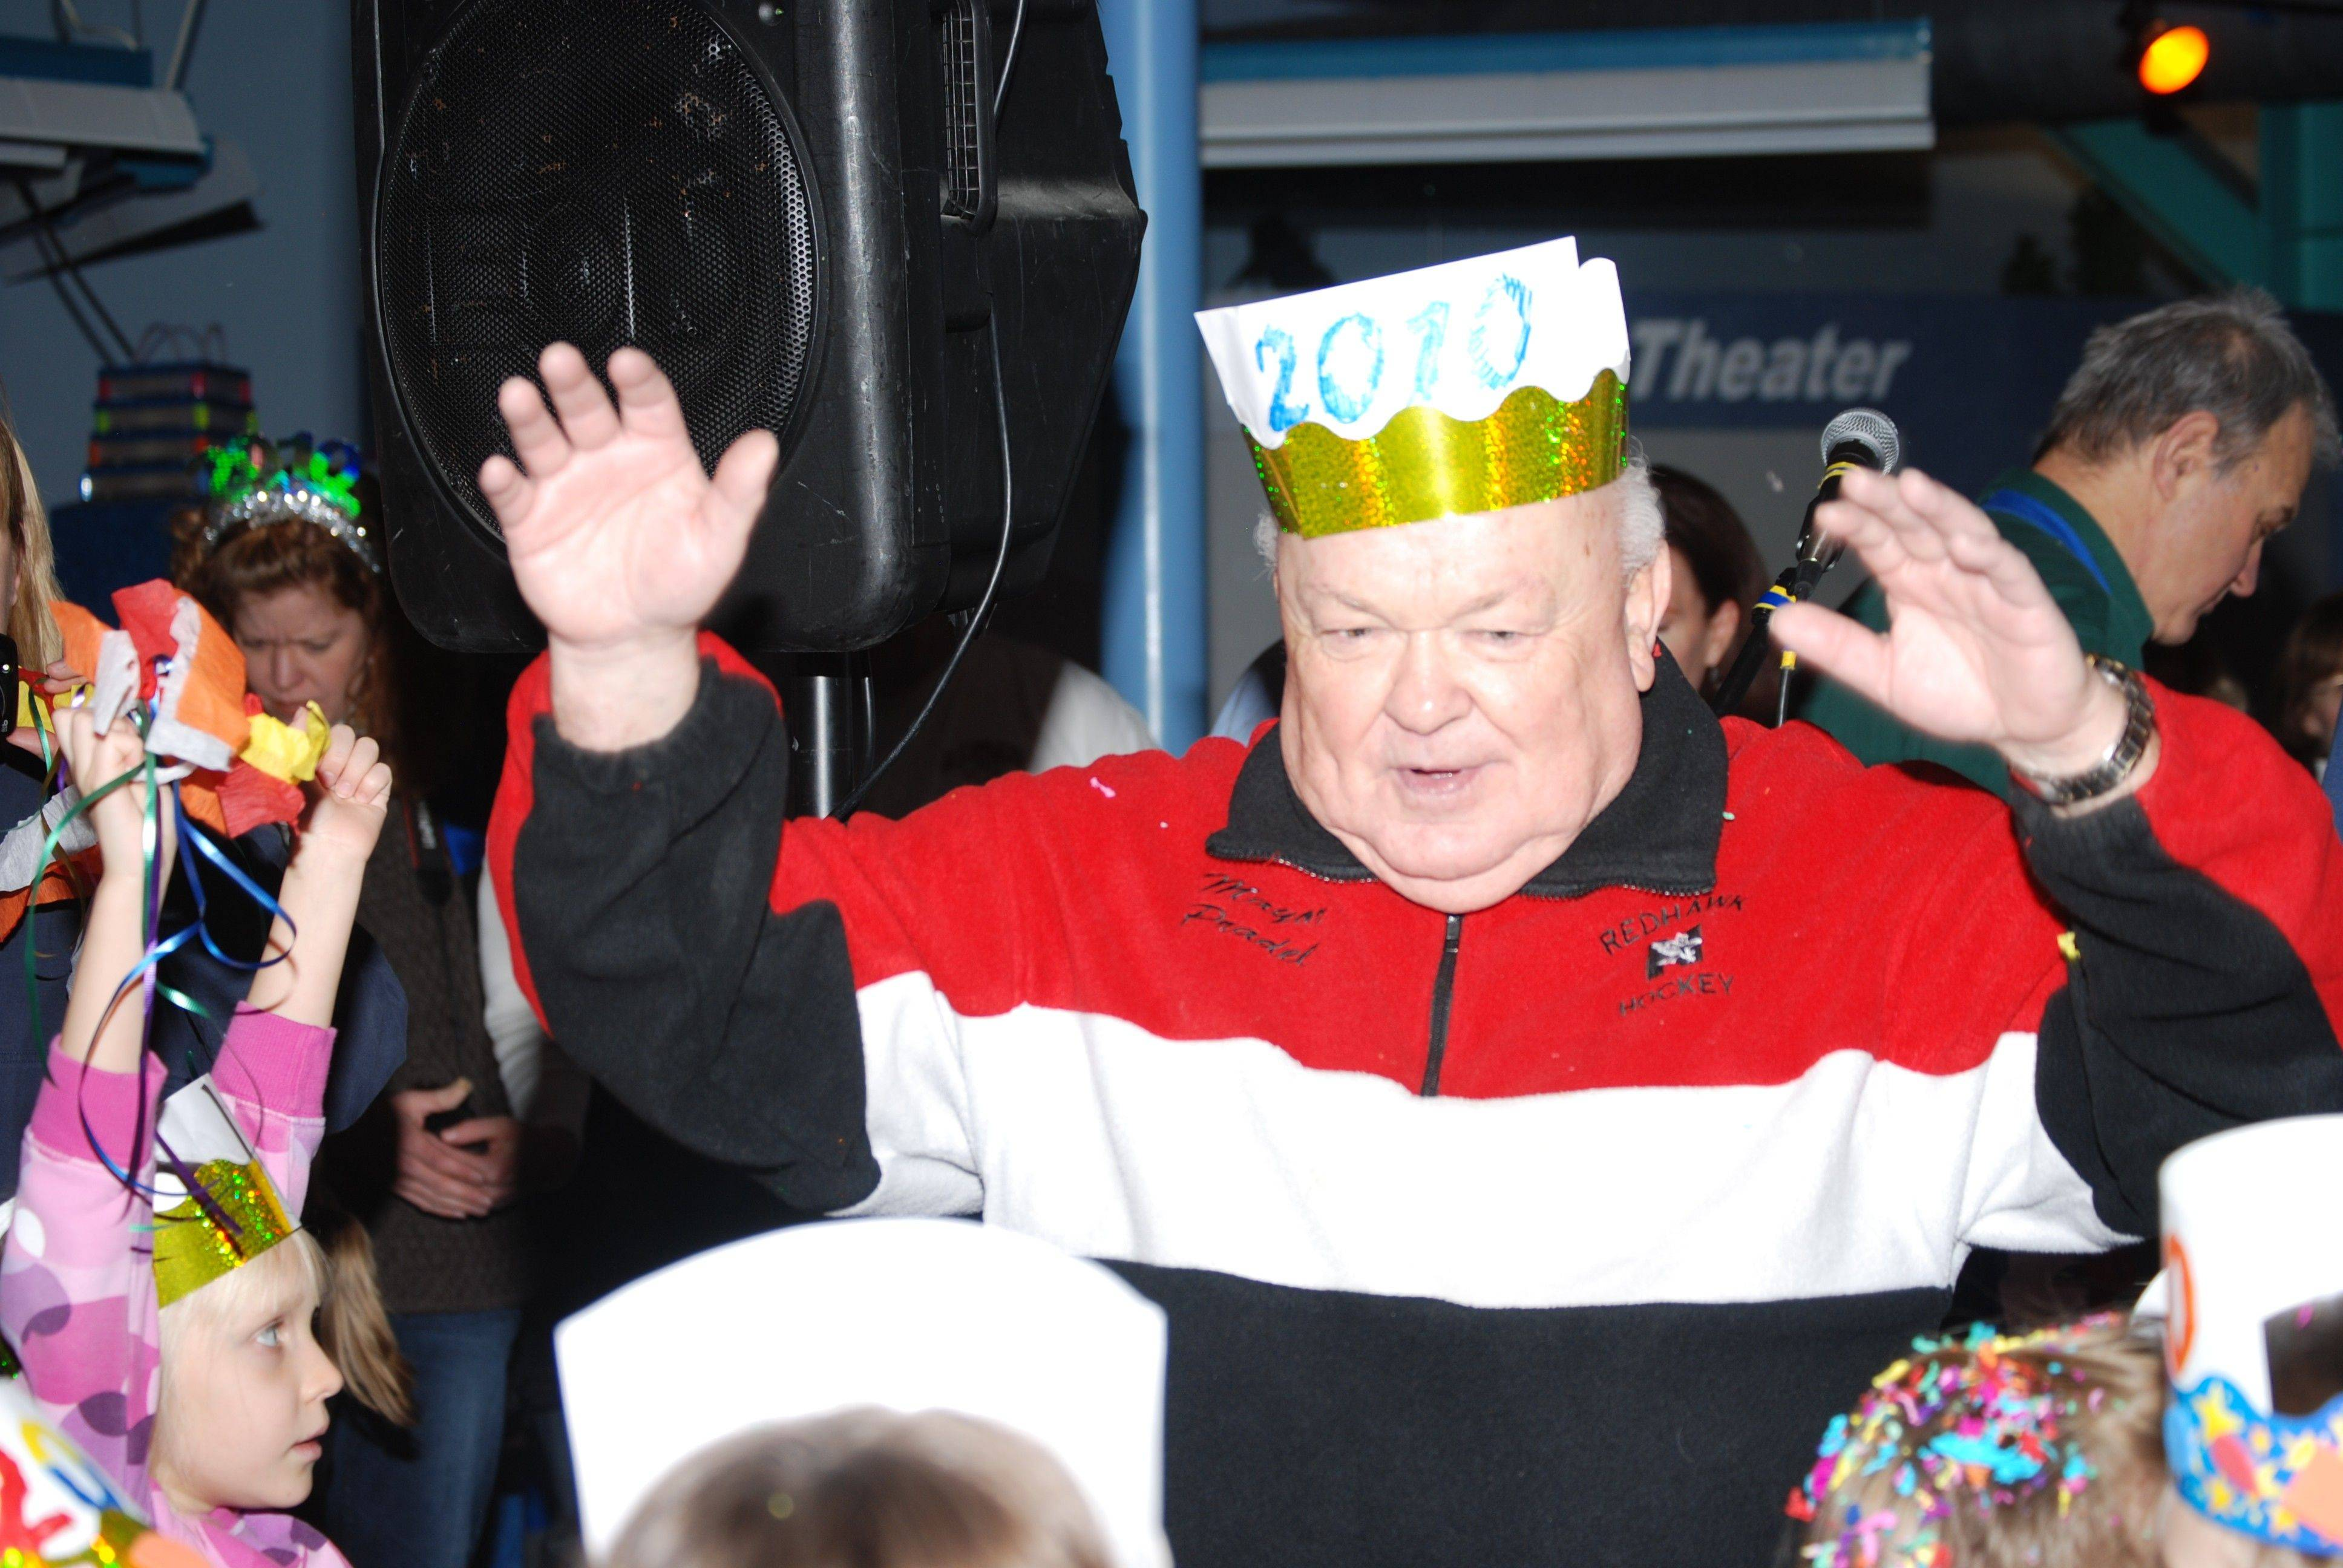 Naperville Mayor A. George Pradel will lead the official early countdown to 2011 -- at noon on Friday, Dec. 31, -- at the DuPage Children's Museum's Bubble Bash 2010 Blast Off! event.